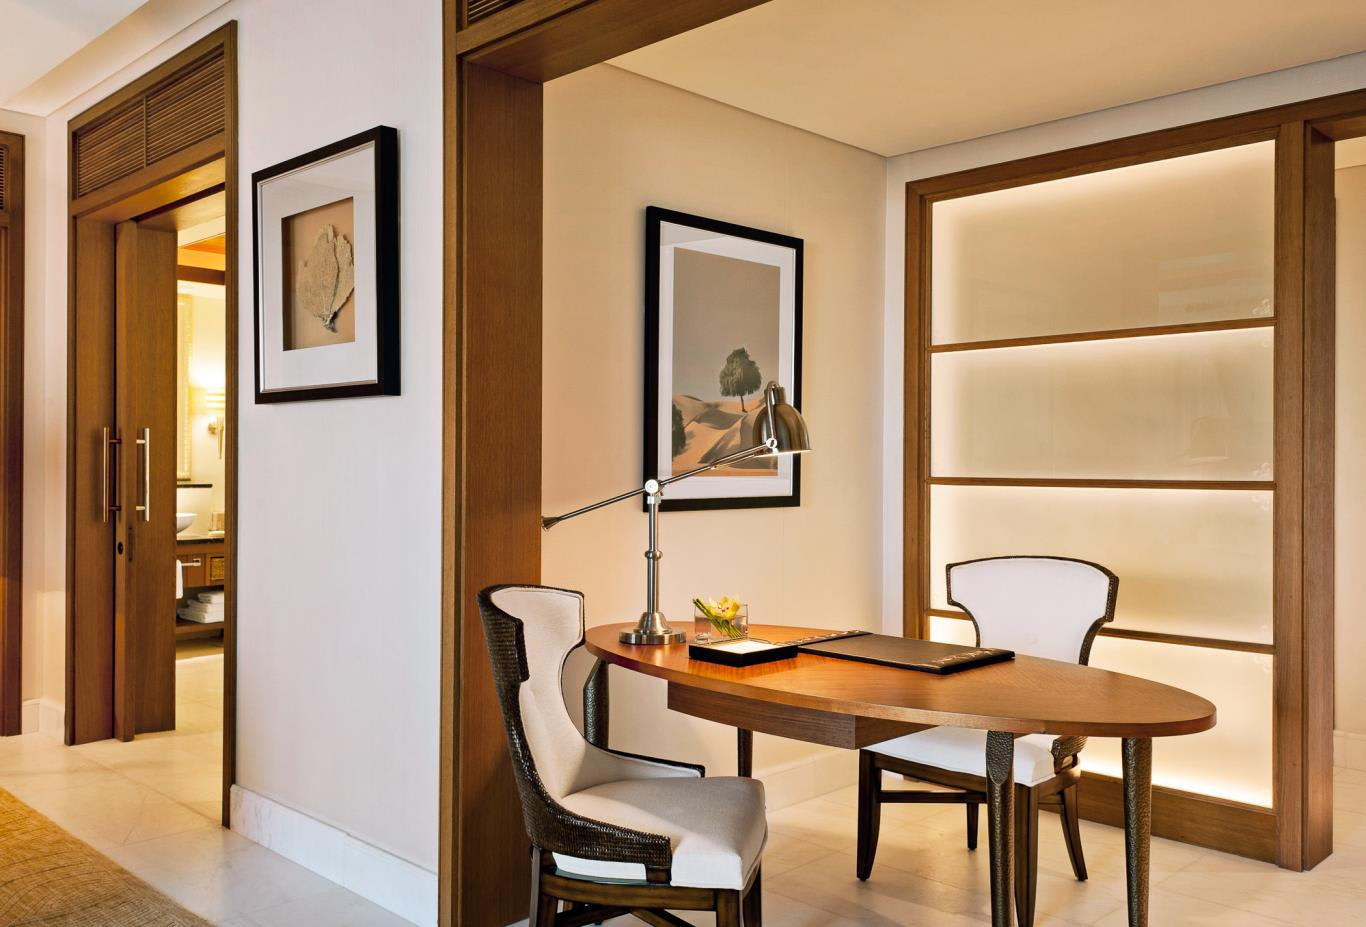 St Regis Suite study room